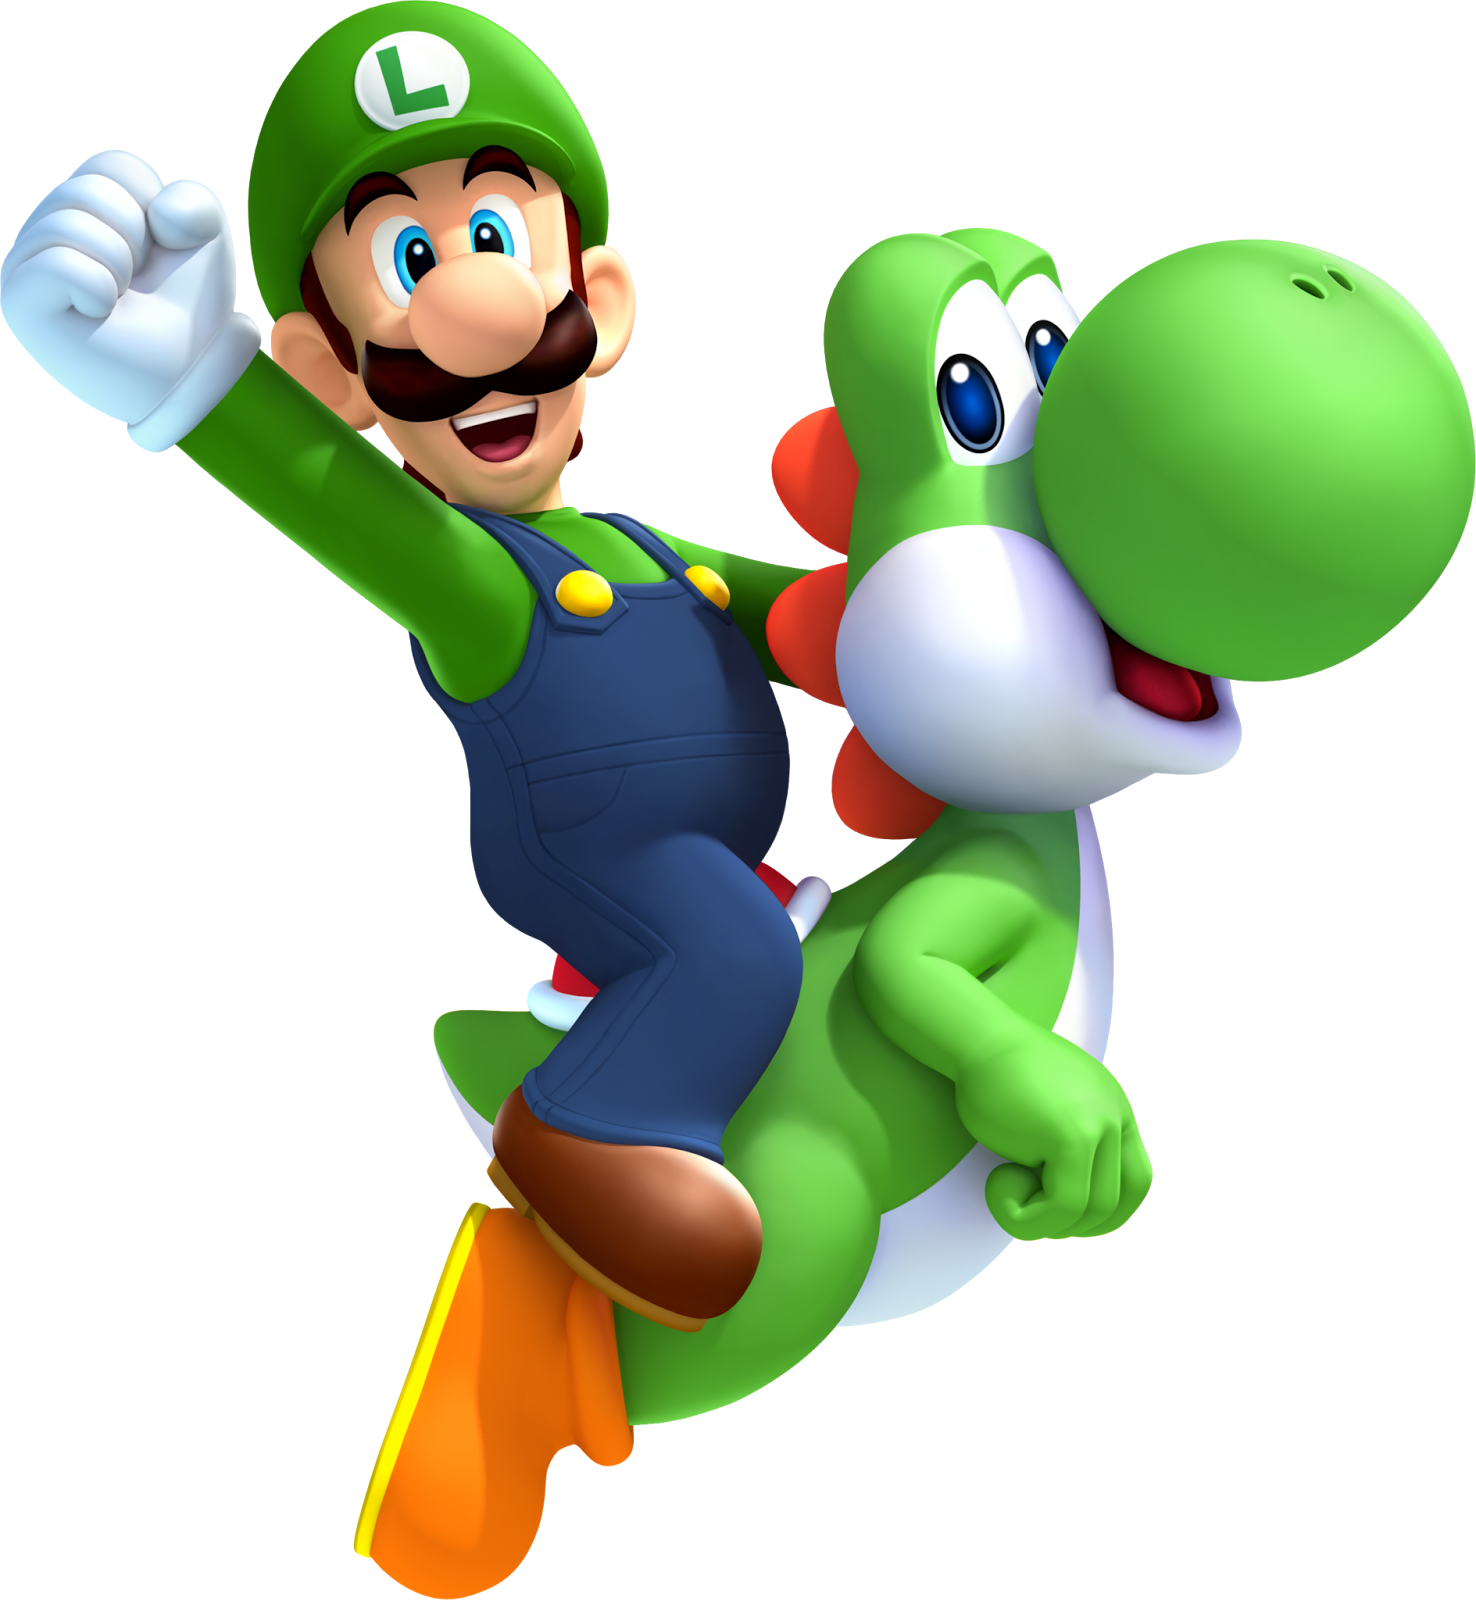 Download and use Mario PNG Image